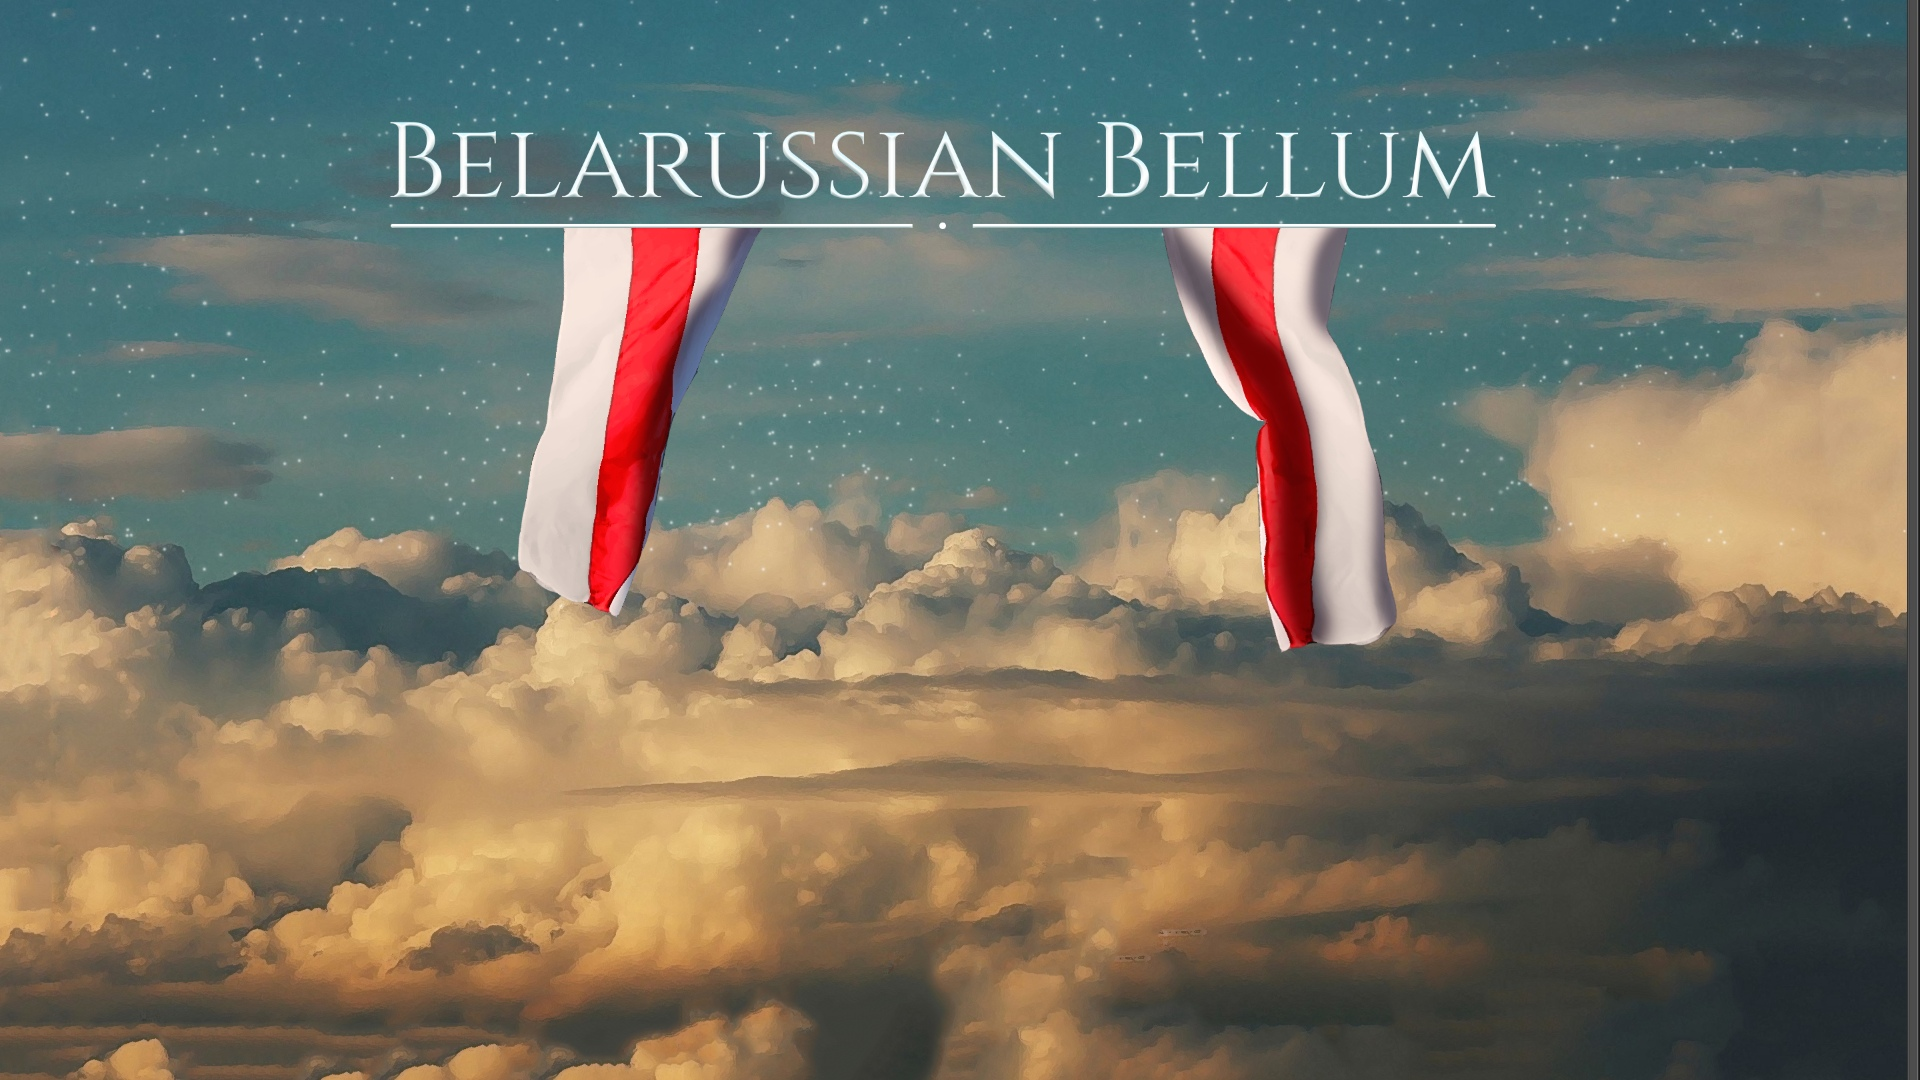 https://xgm.guru/p/wc3/belarussianbellum